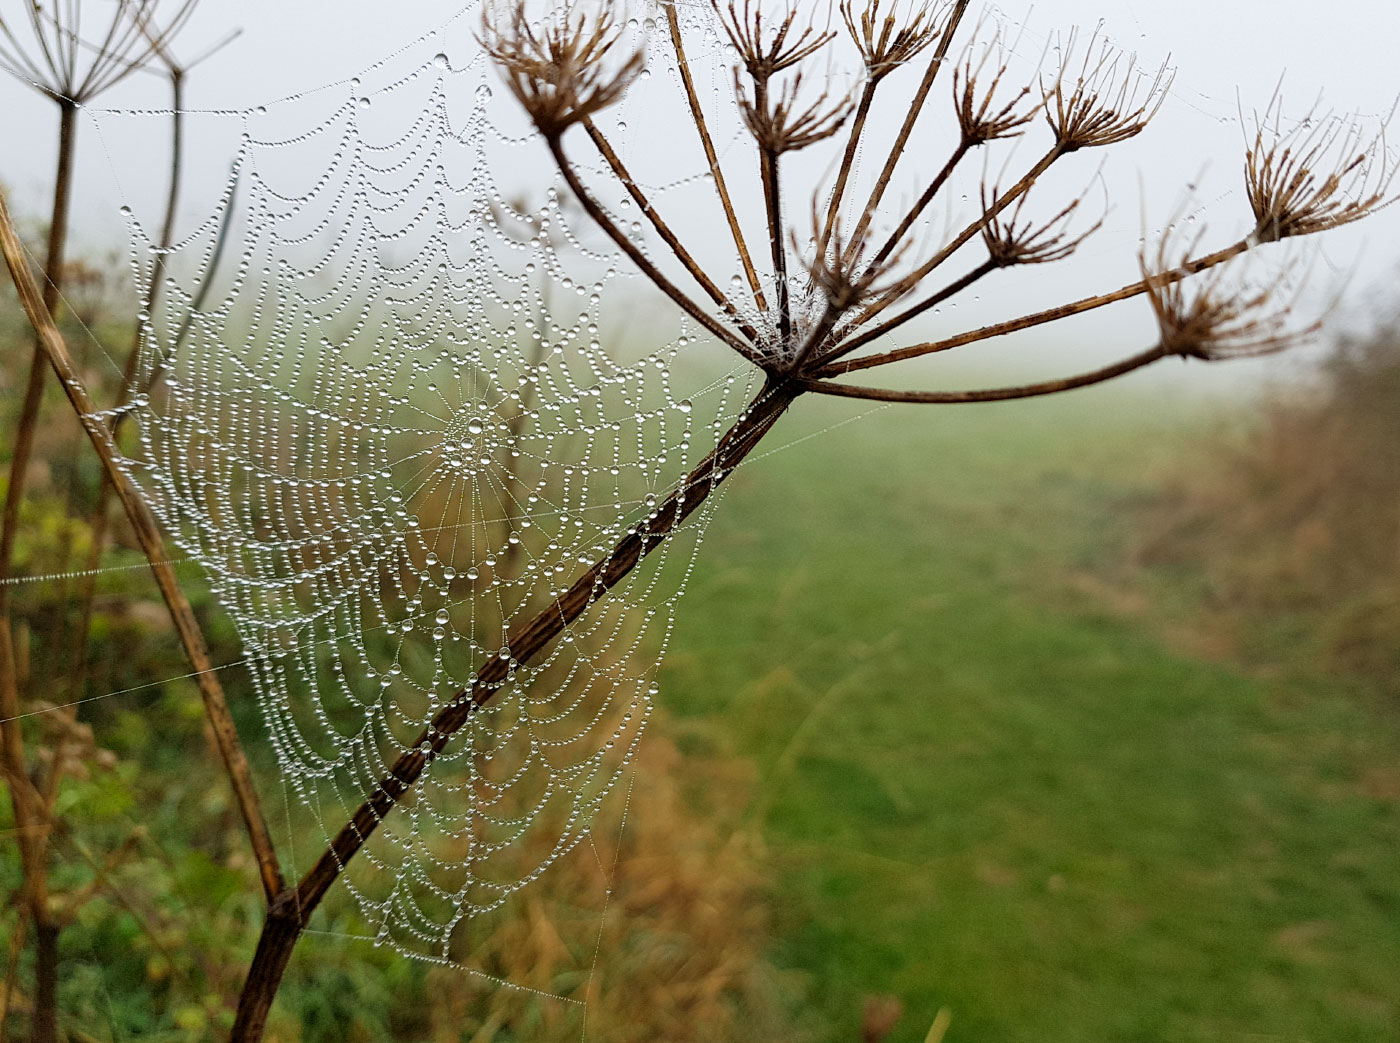 Fog in the web